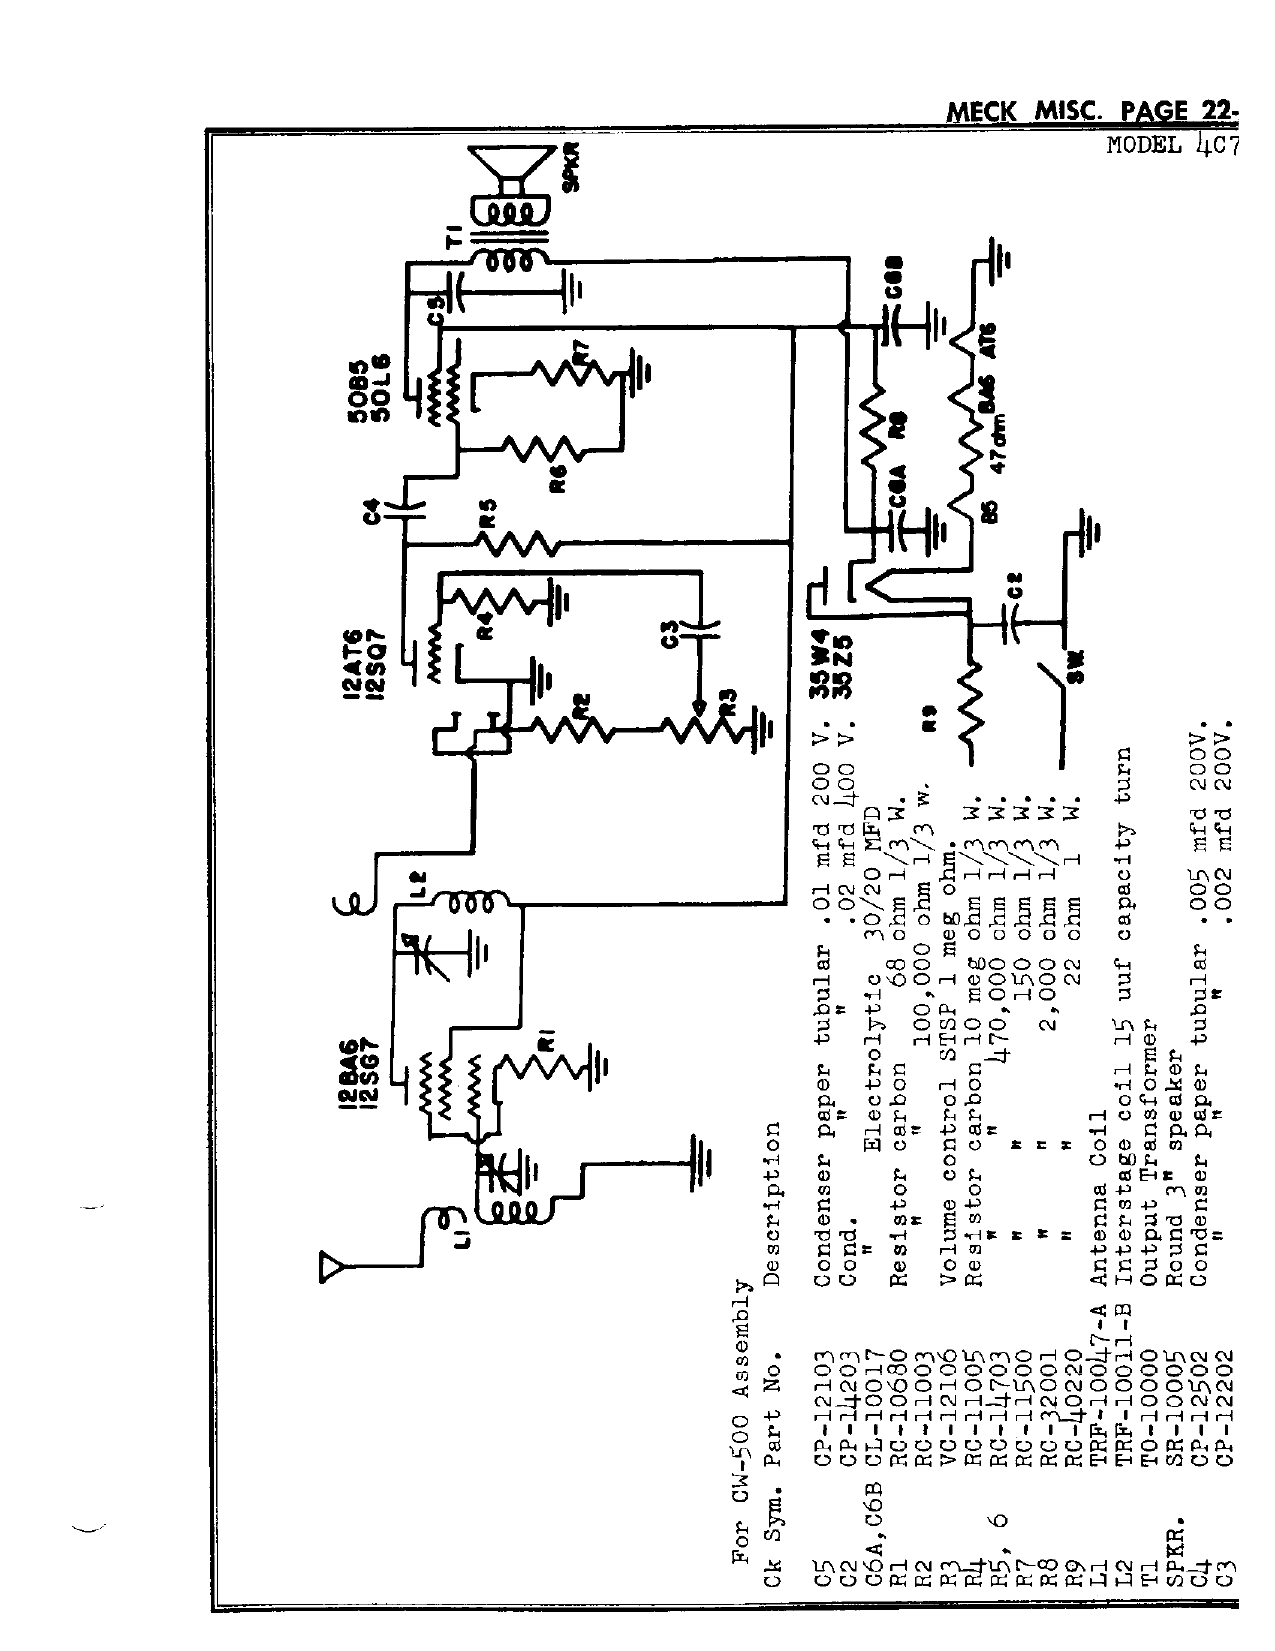 Eck Misc Page 22 Model 14 07